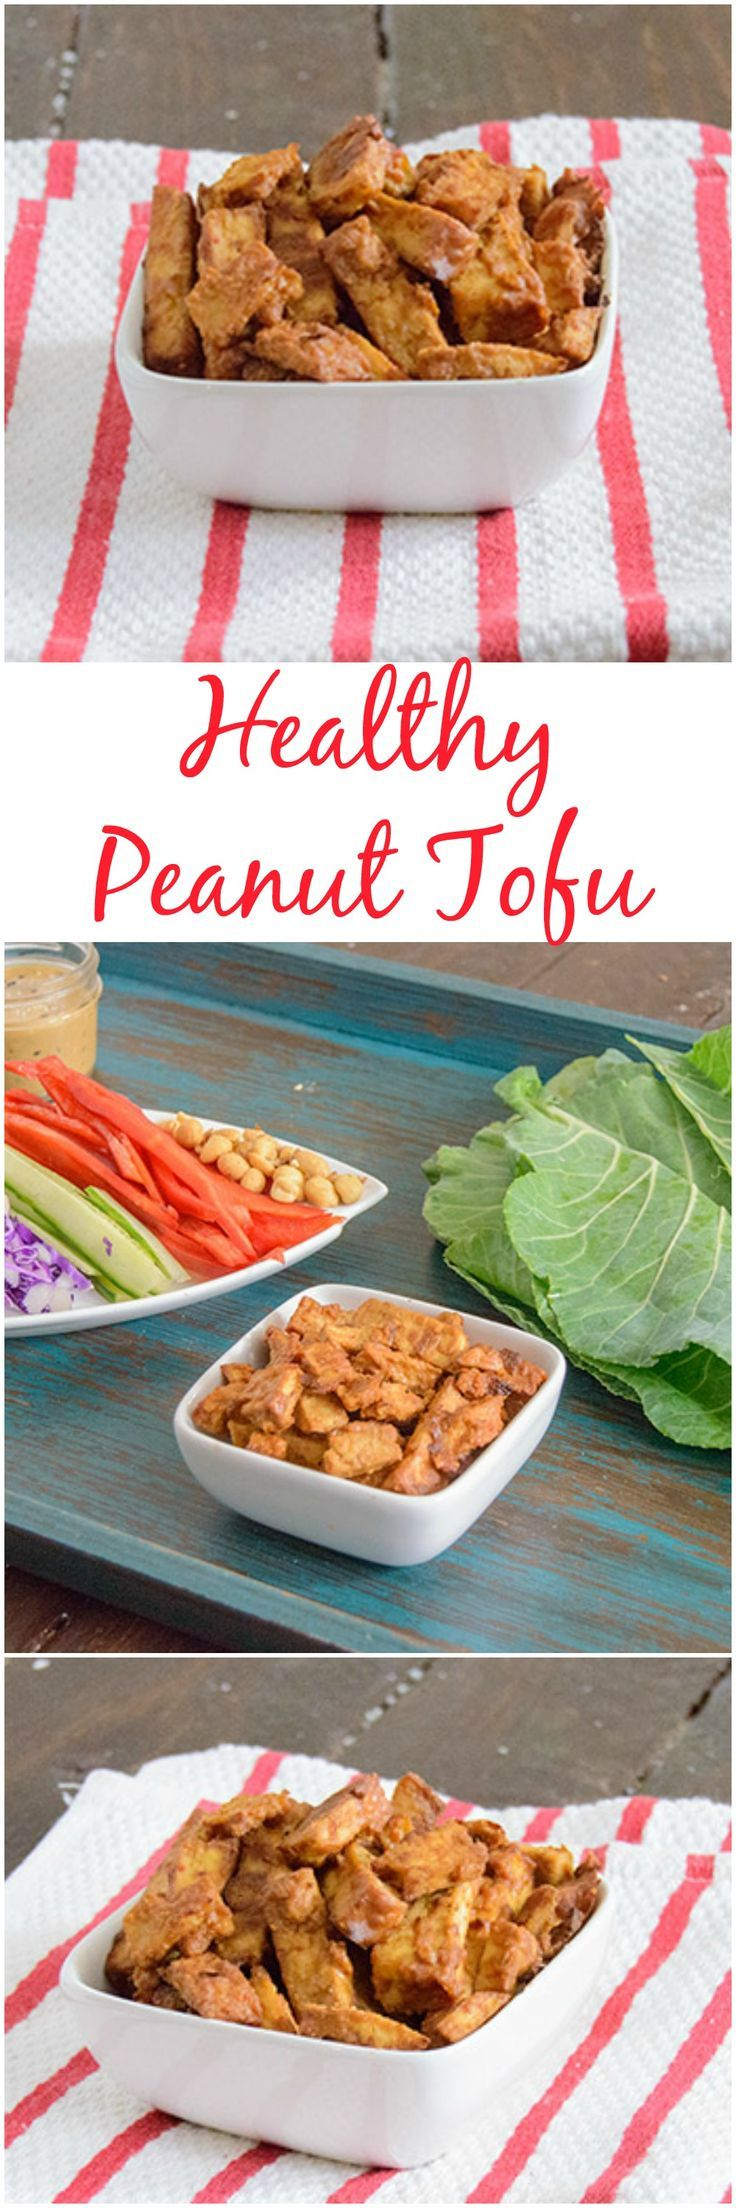 Baked Peanut Tofu - this healthy vegan tofu recipe crispy even though it's baked! Vegan, gluten free, and packed with flavor, perfect for dinner! Try it with stir fry veggies for a healthy, simple meal!